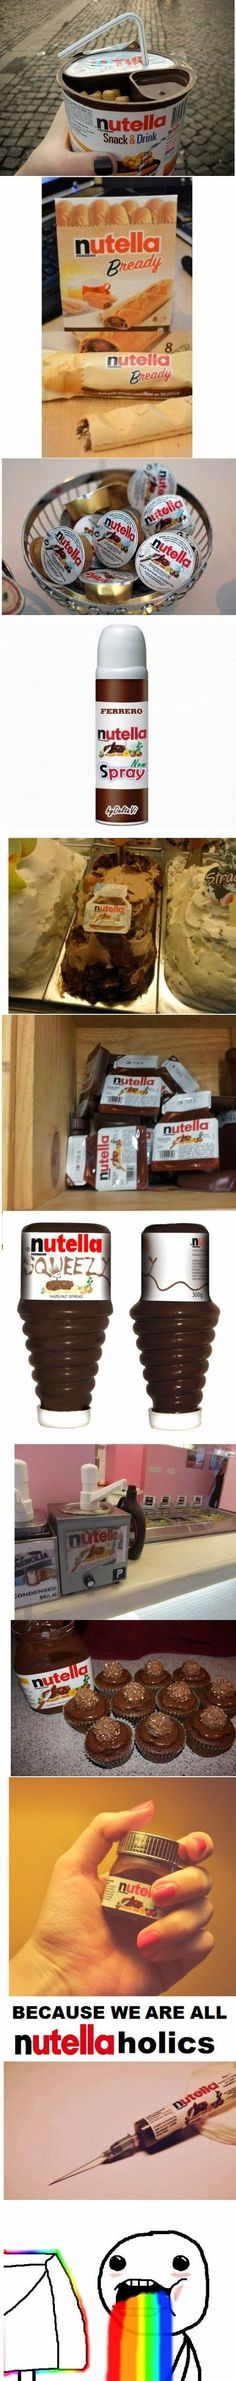 I want Nutella right now. Nutellaholic!  @Rheanne Parsons